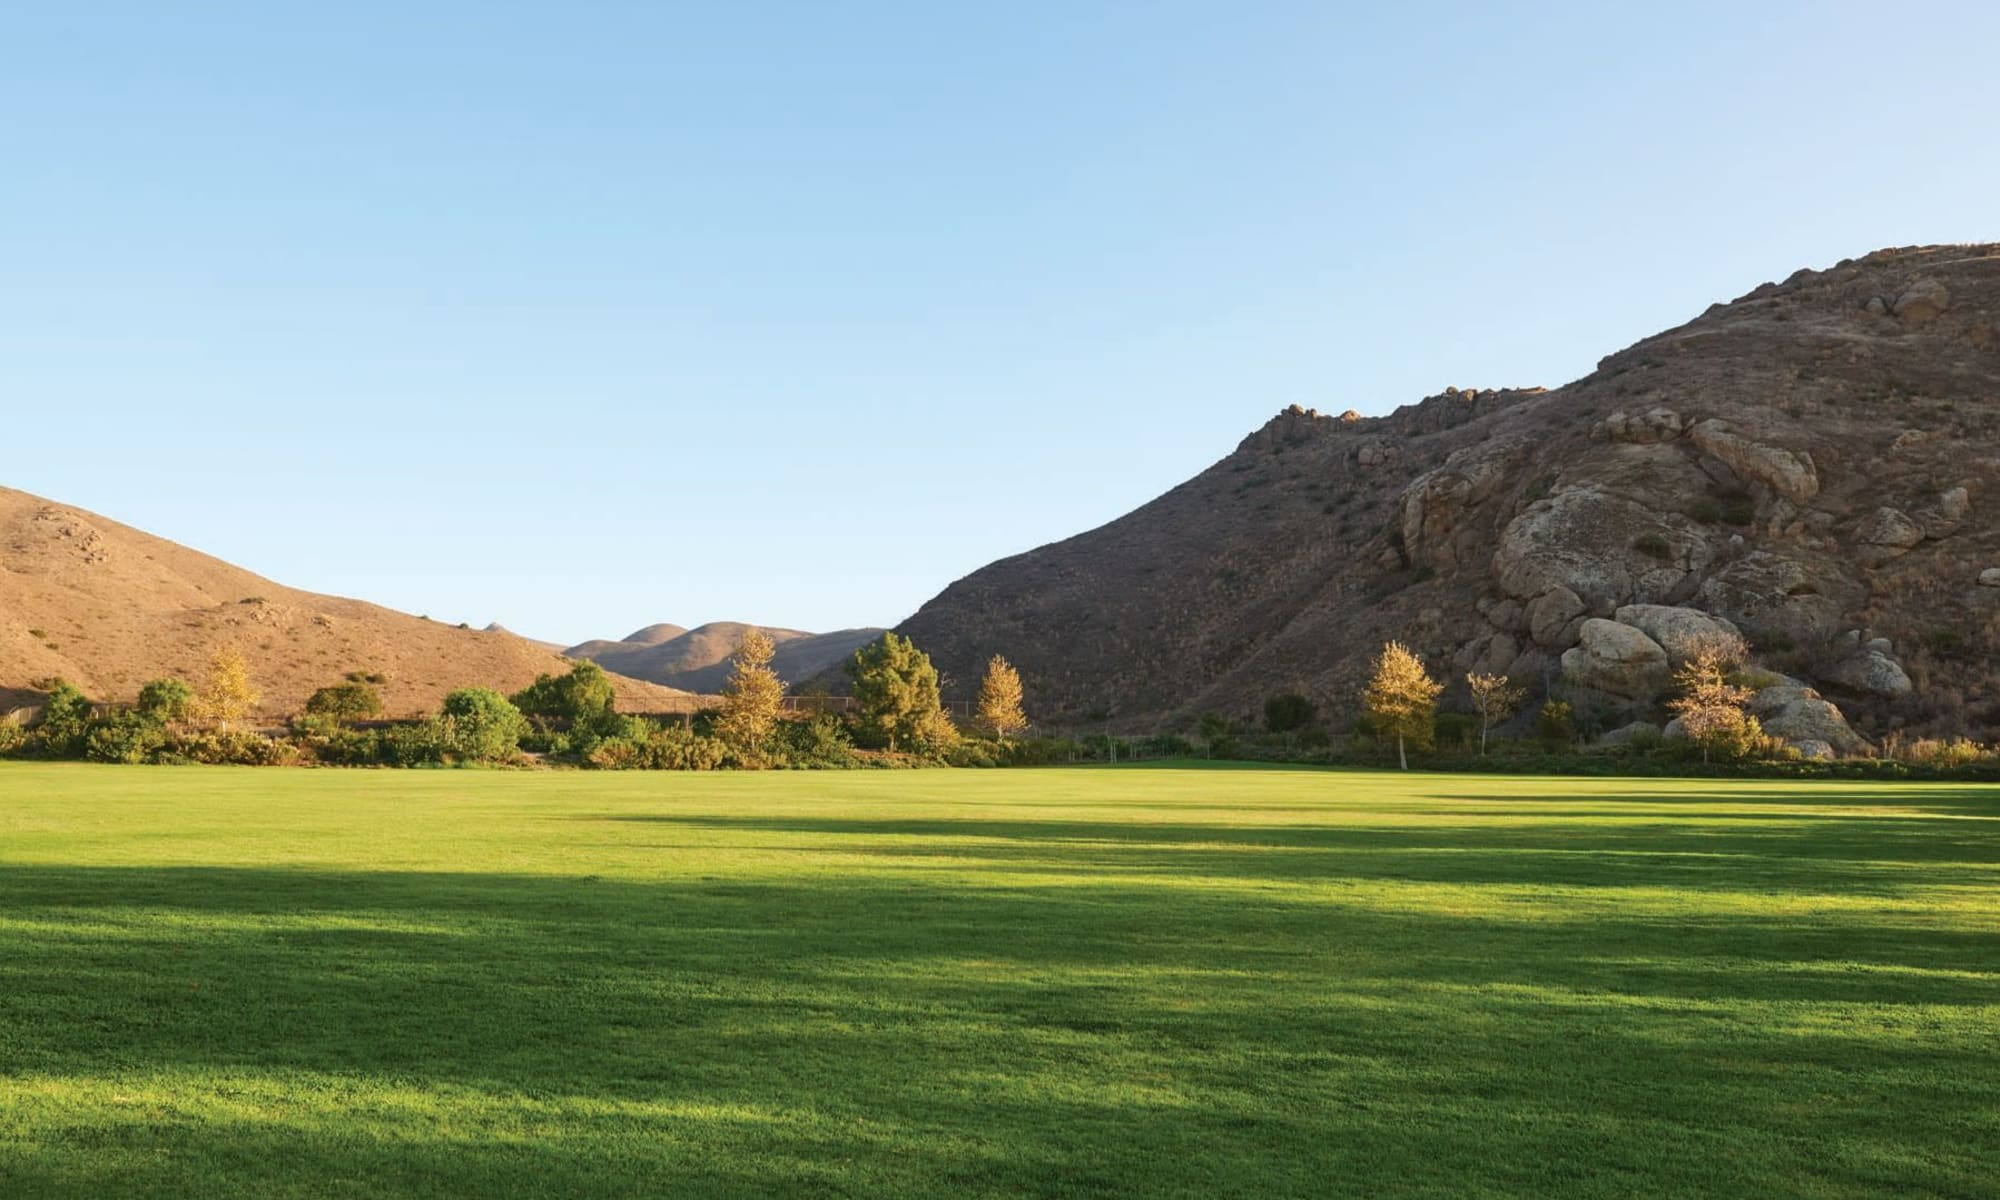 Expansive green lawn at Mission Hills in Camarillo, California